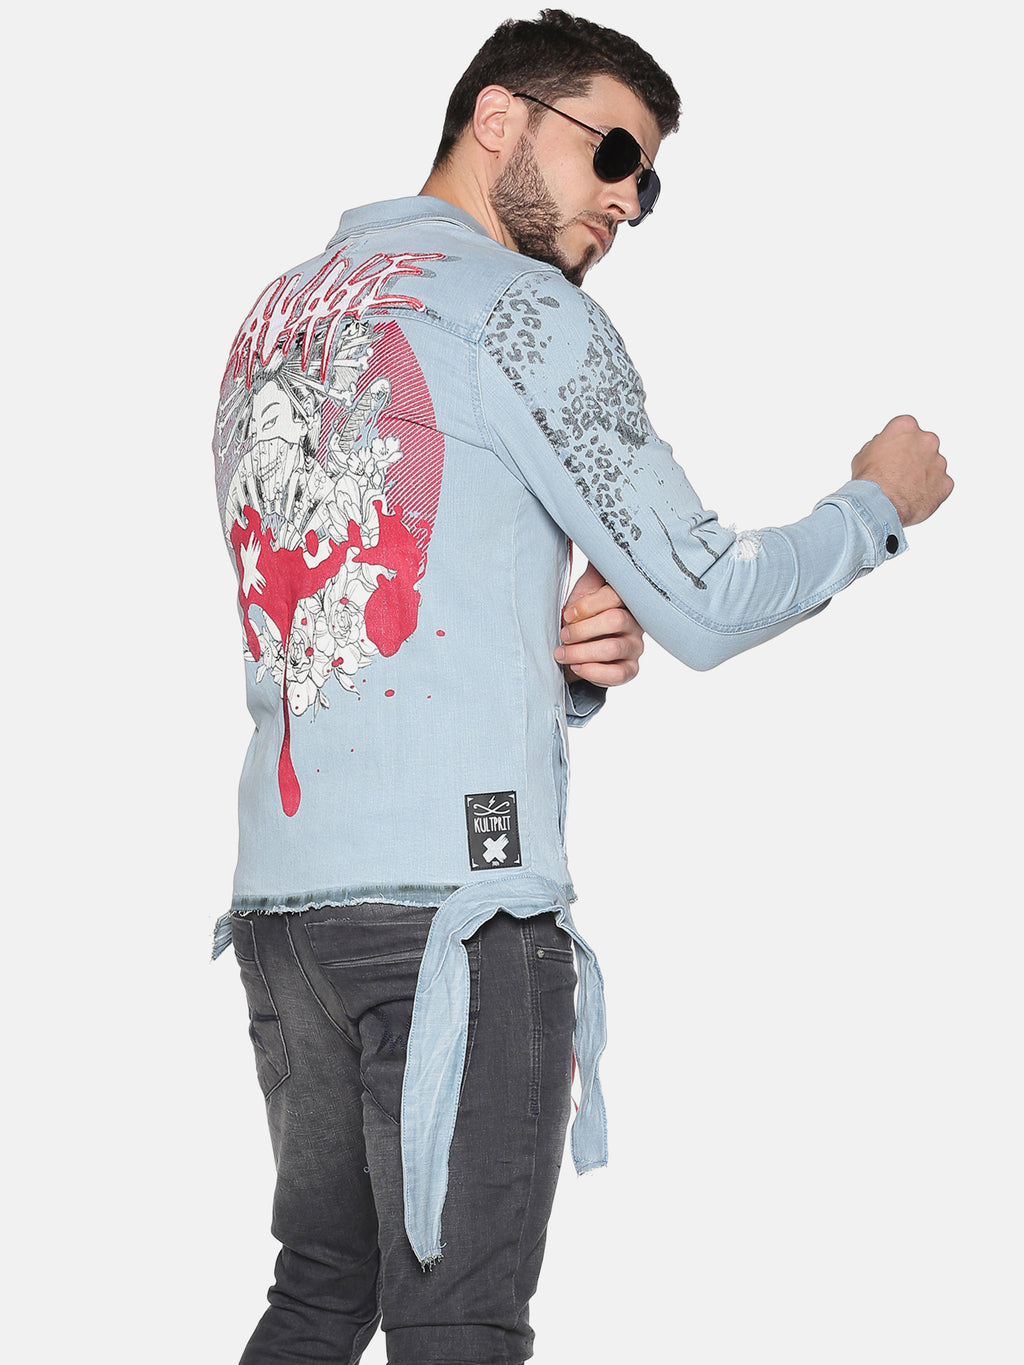 Kultprit Men's Full Sleeves Denim Jackets With Back Print & Front Mid Printed Tape